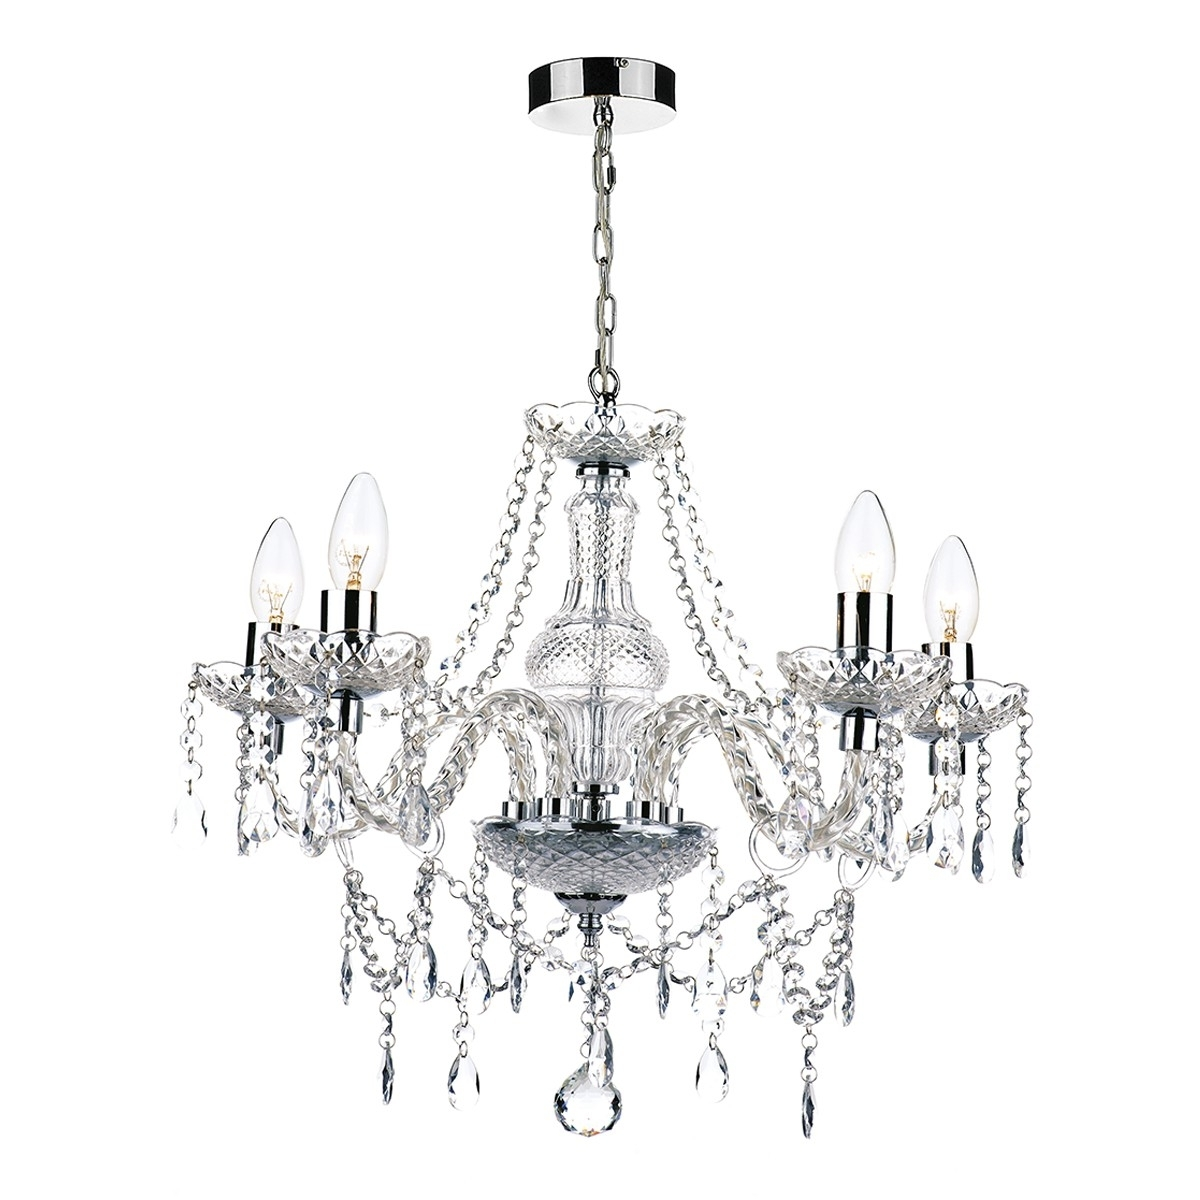 Newest Light : Light Chandelier Katie Polished Chrome Acrylic Glass Silver With Acrylic Chandeliers (View 11 of 15)